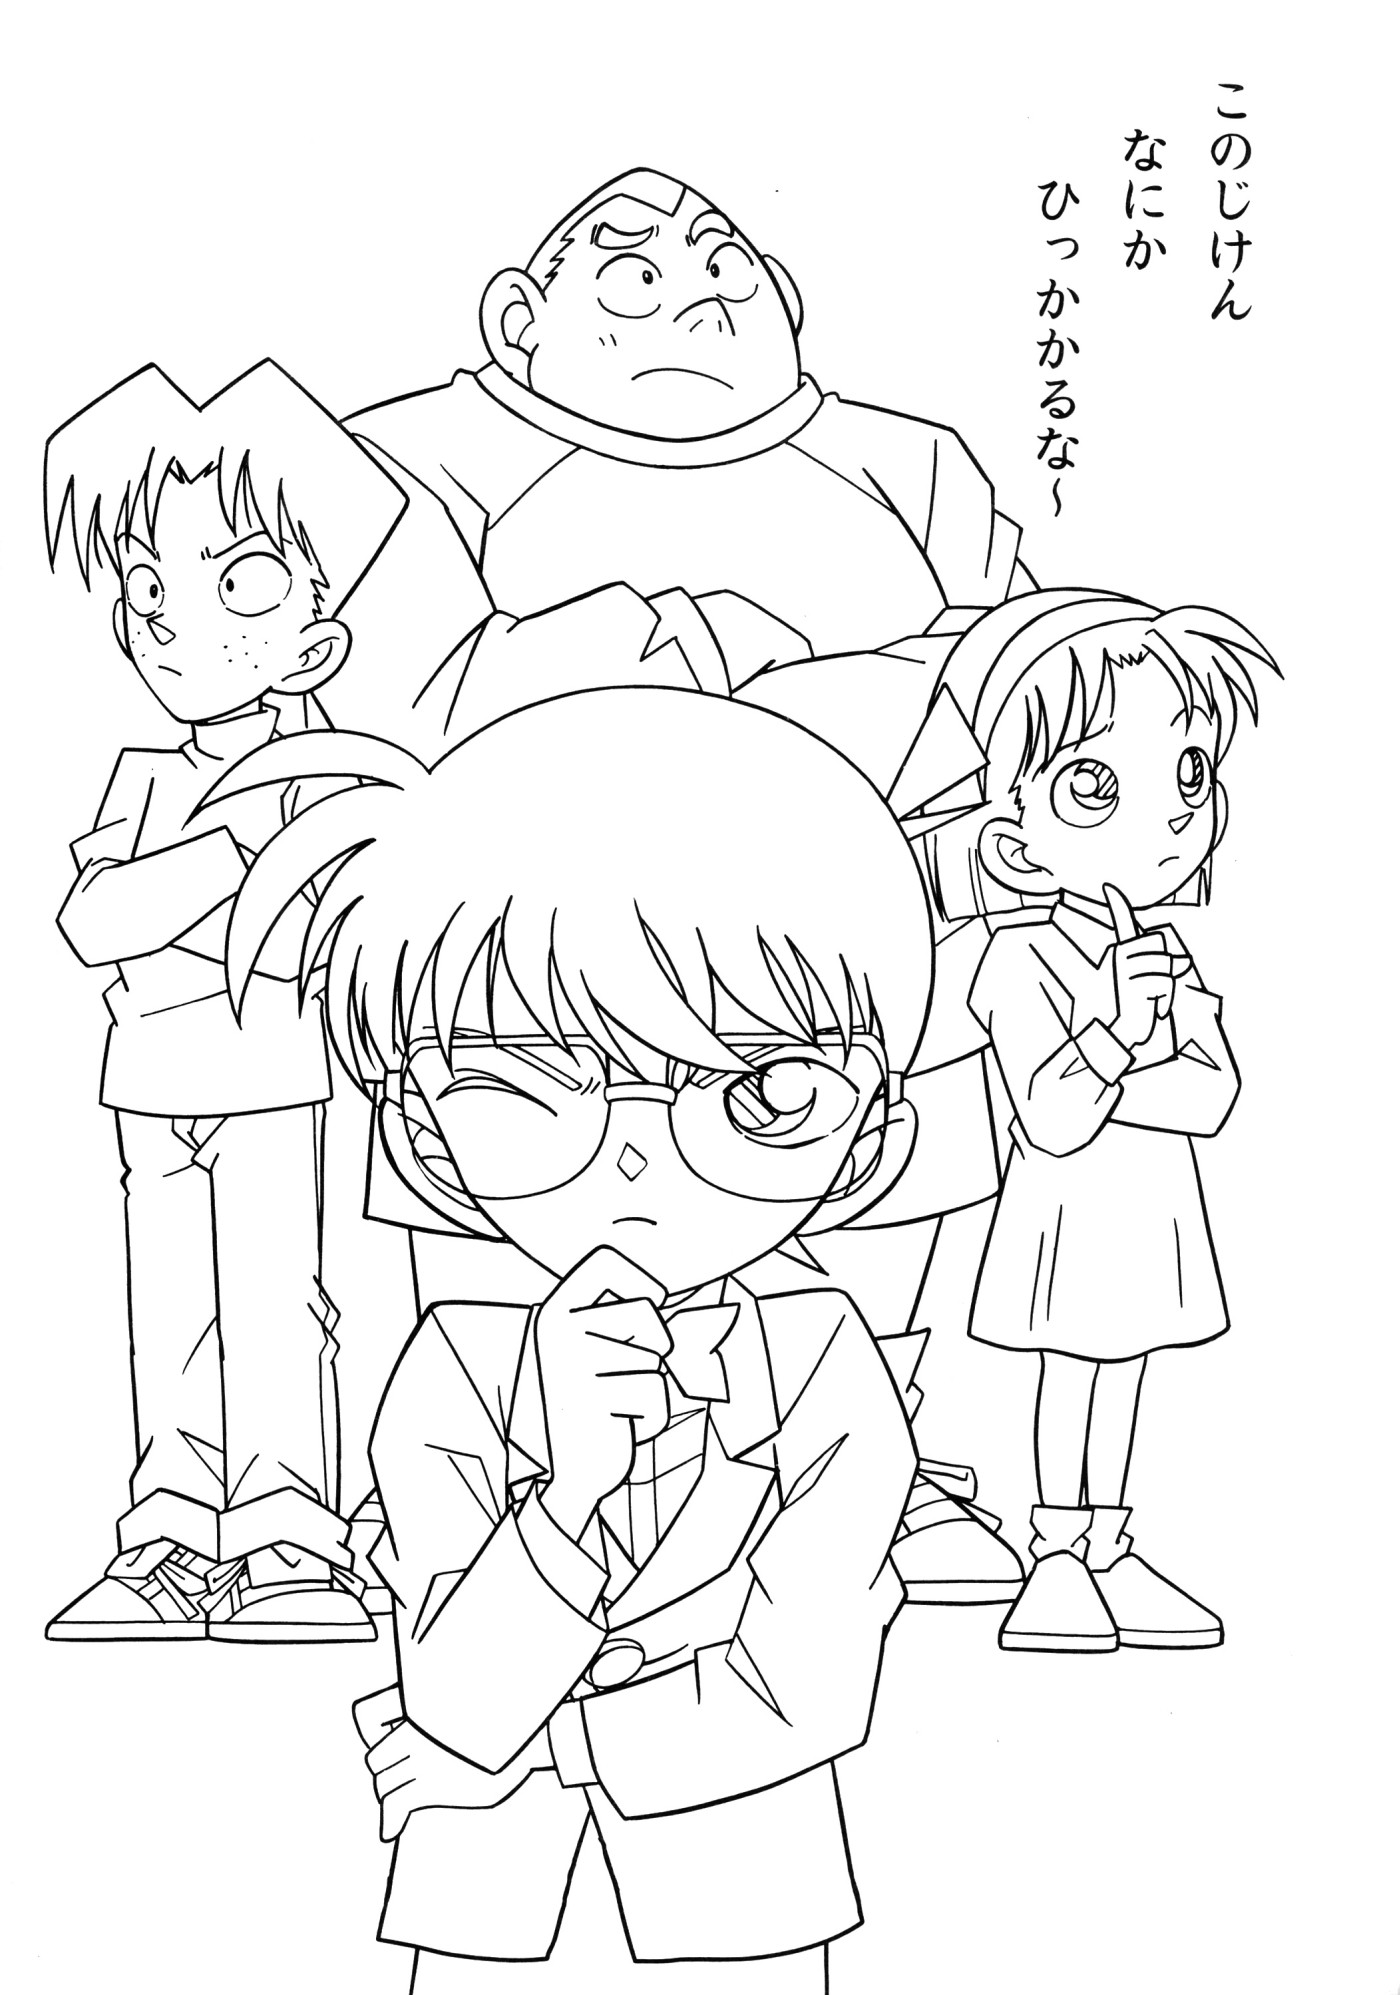 detective-conan coloring pages from oliver - free printables